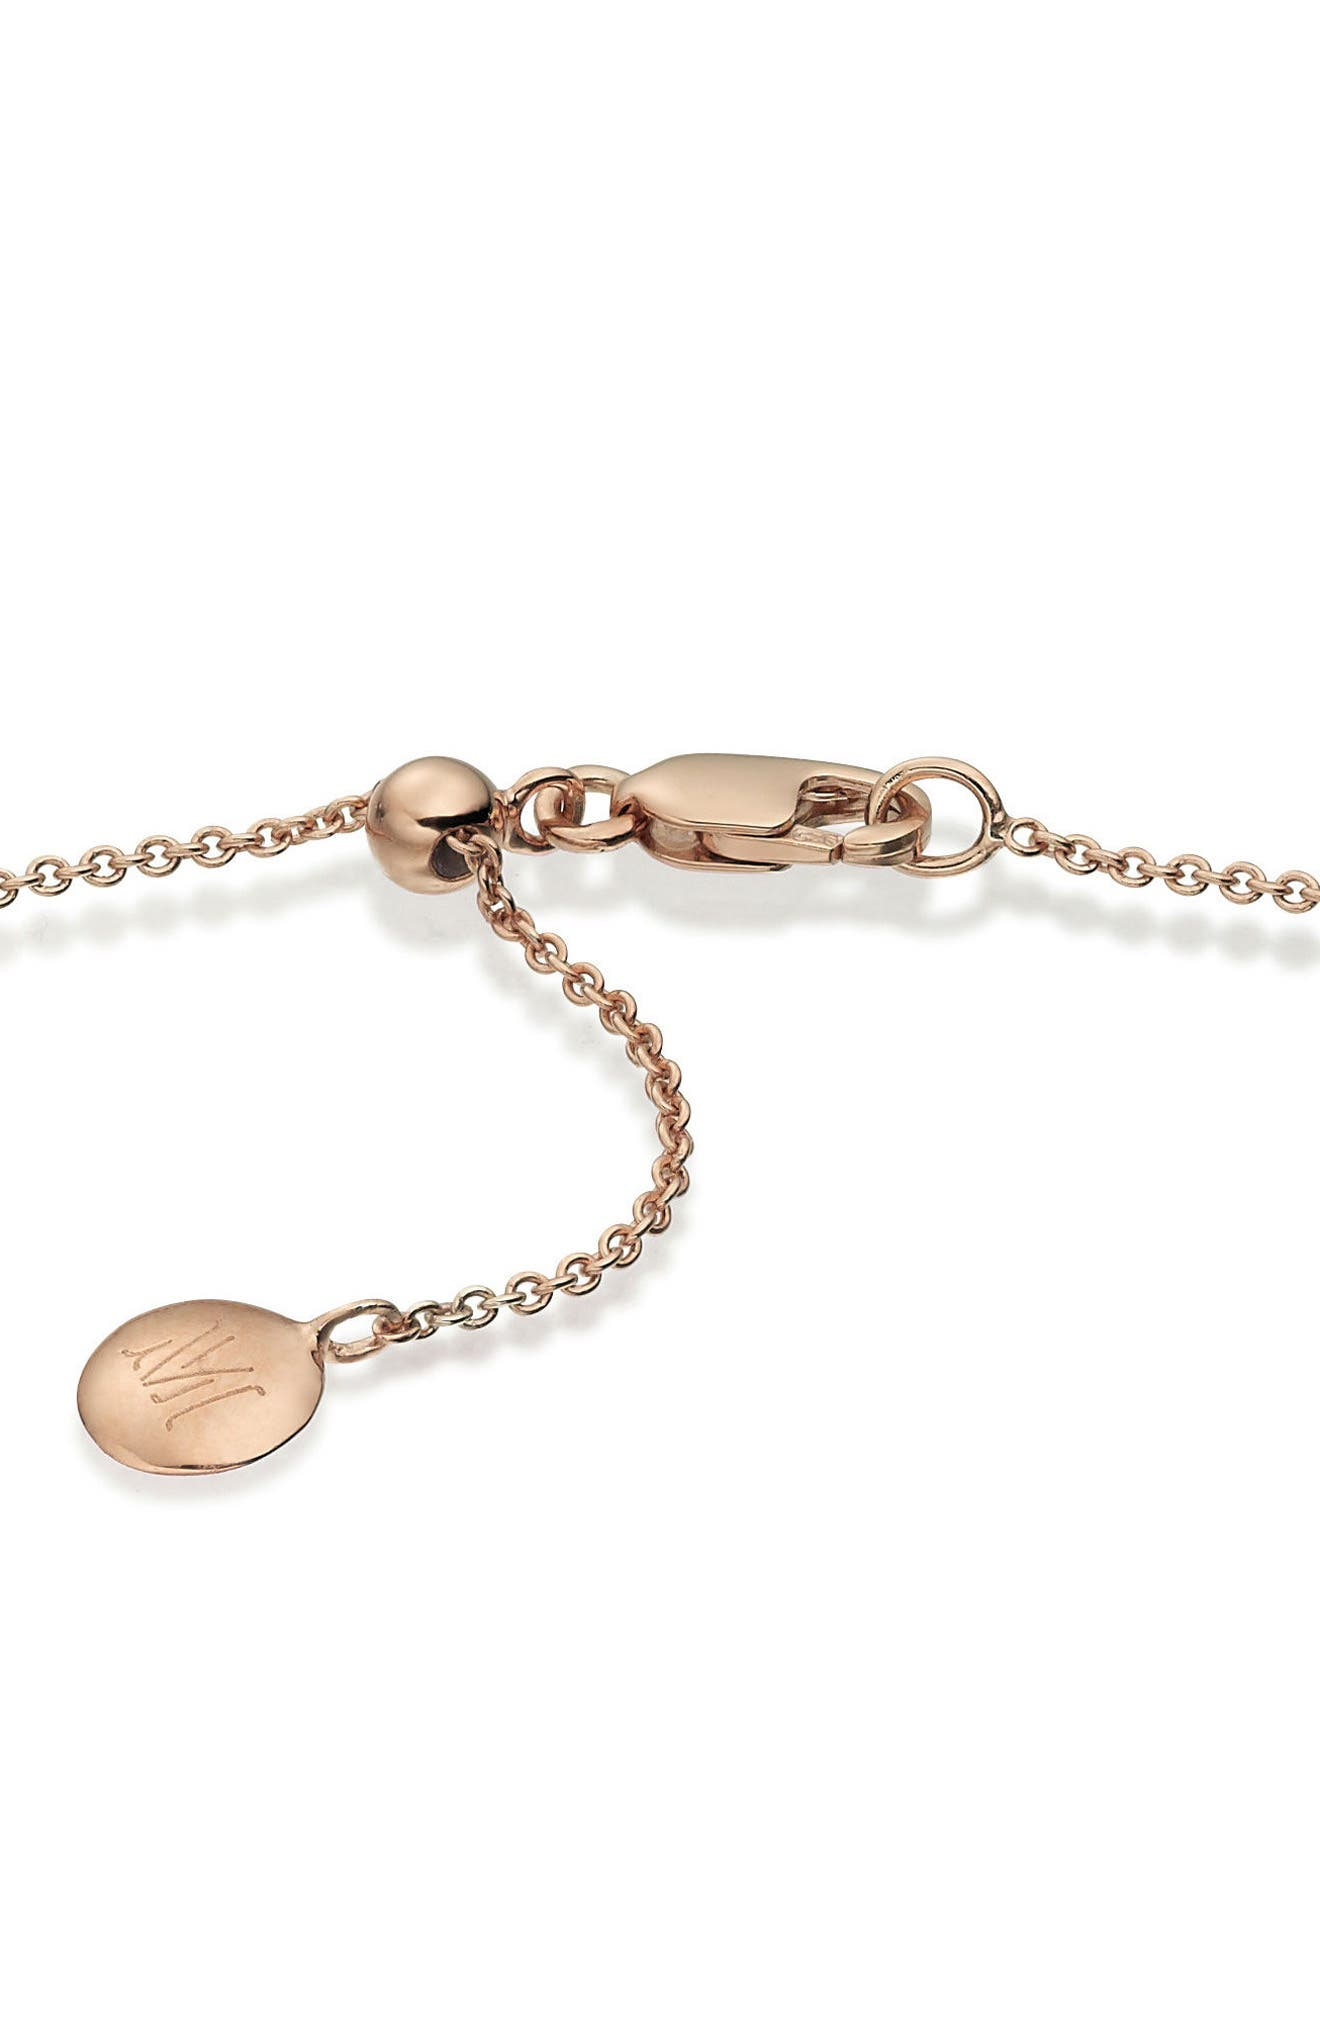 24-Inch Rolo Chain,                             Alternate thumbnail 2, color,                             Rose Gold